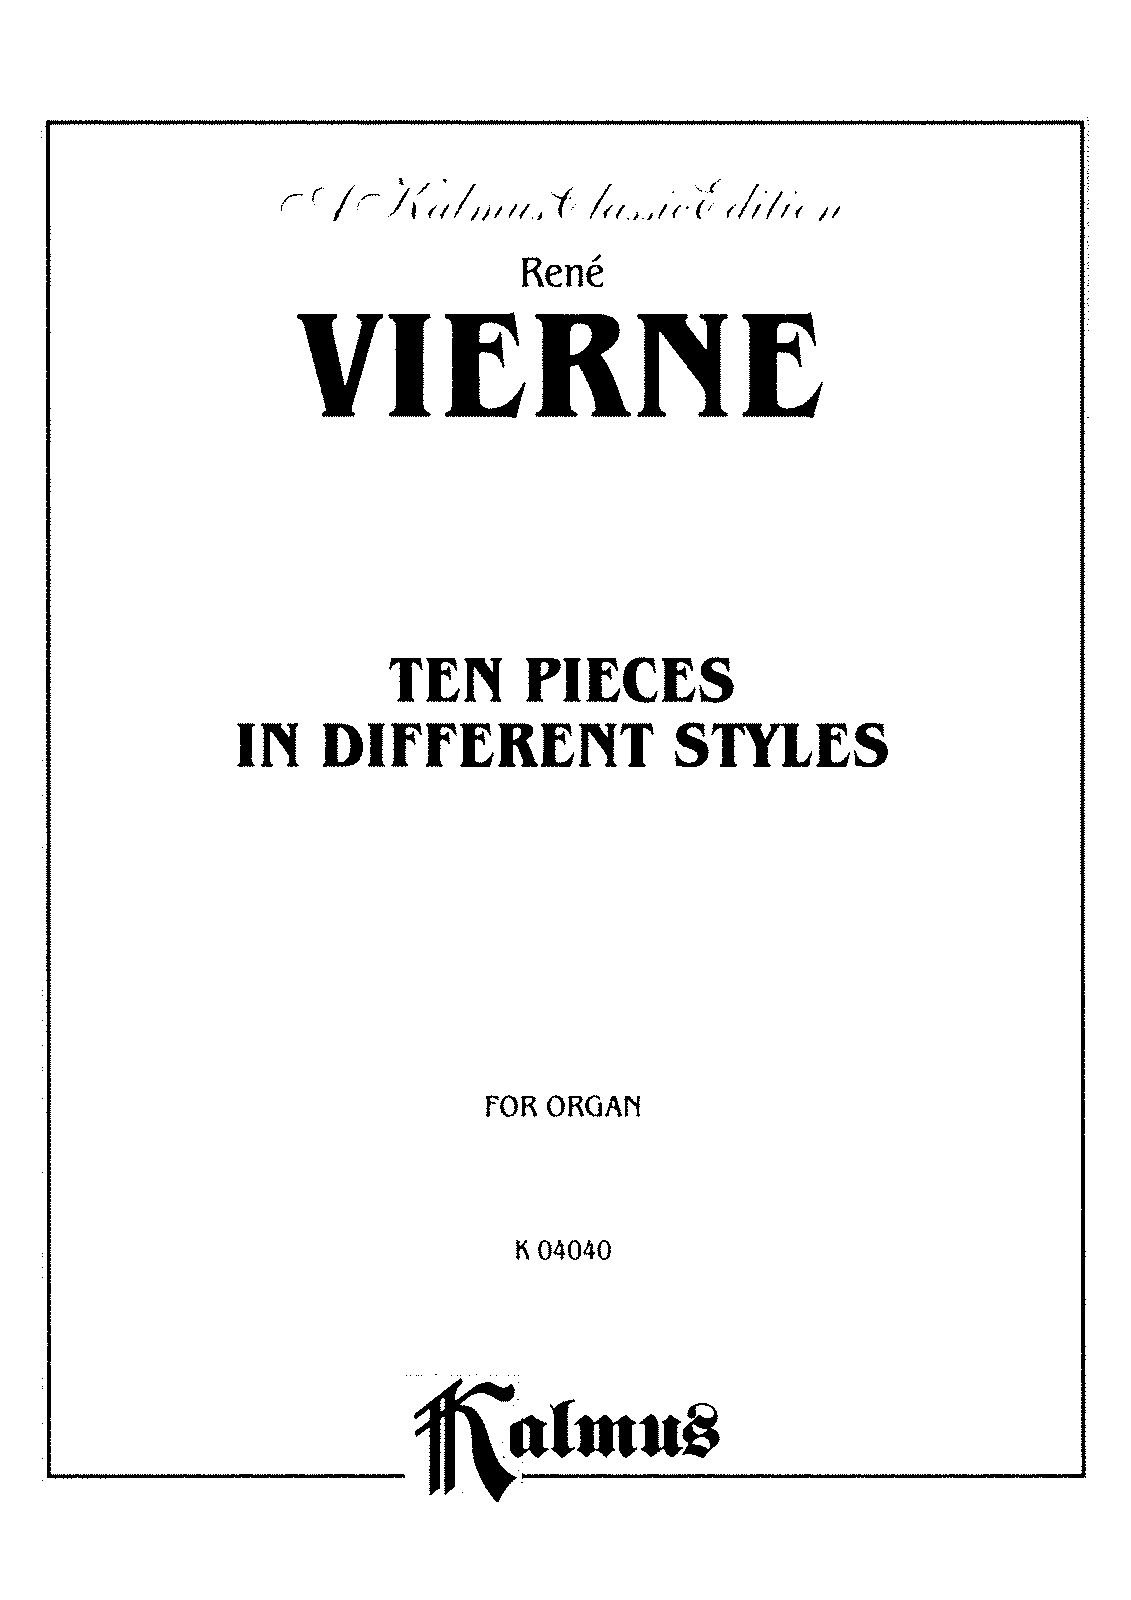 PMLP292936-Vierne, René, 10 Pieces of different styles, 1st suite.pdf